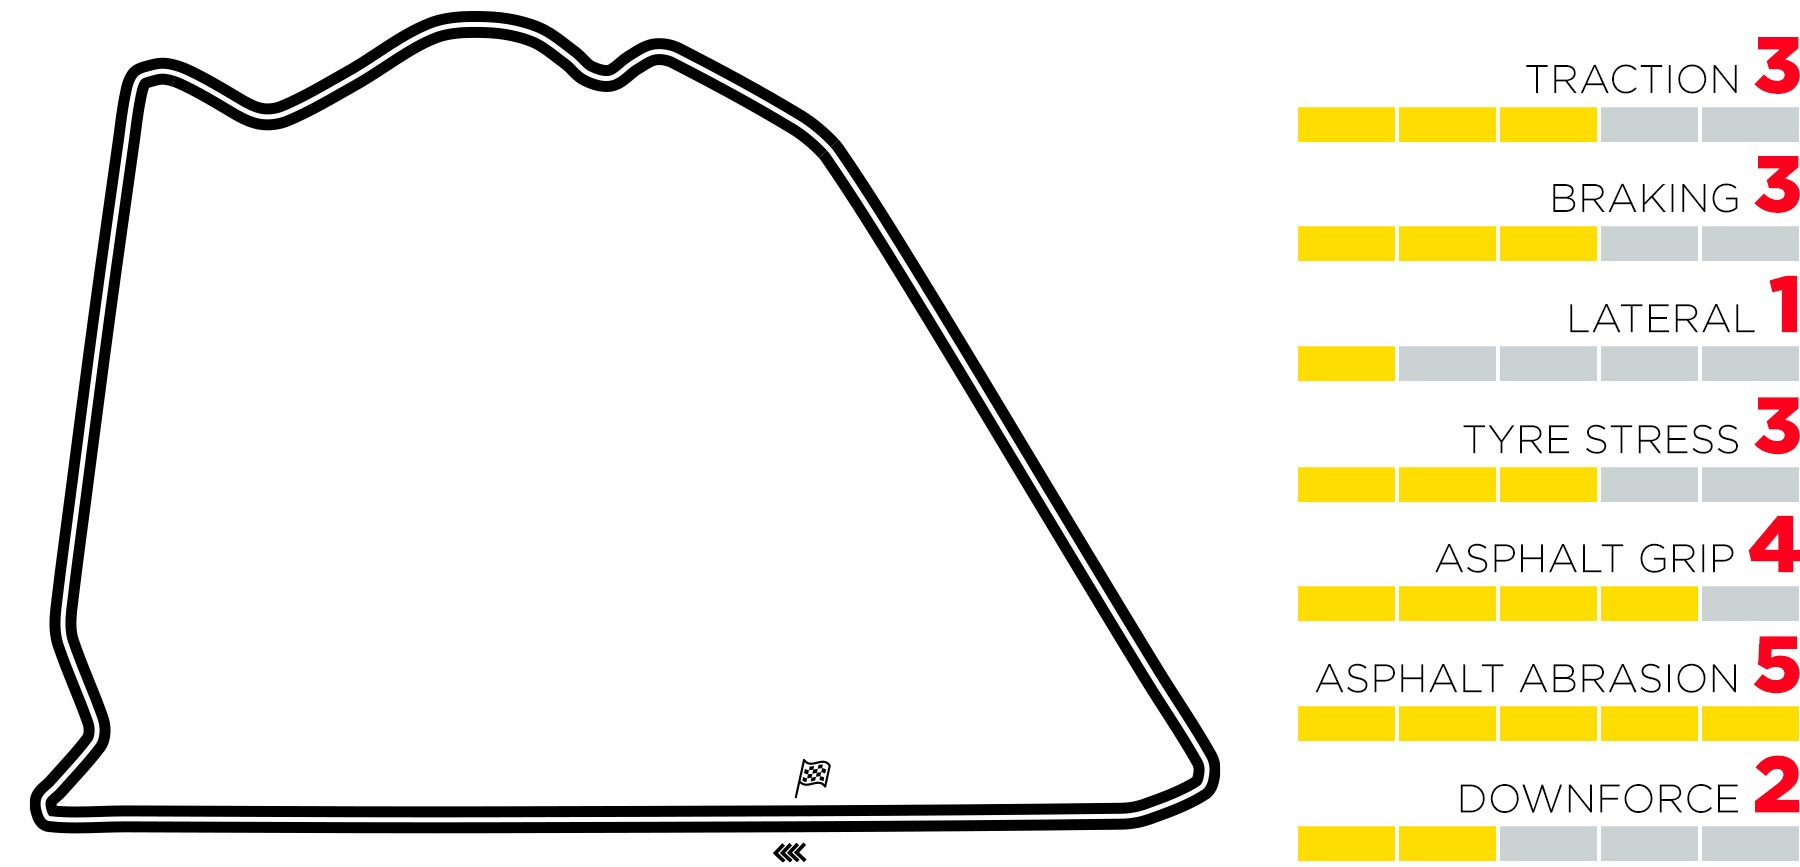 bahrain outer track layout